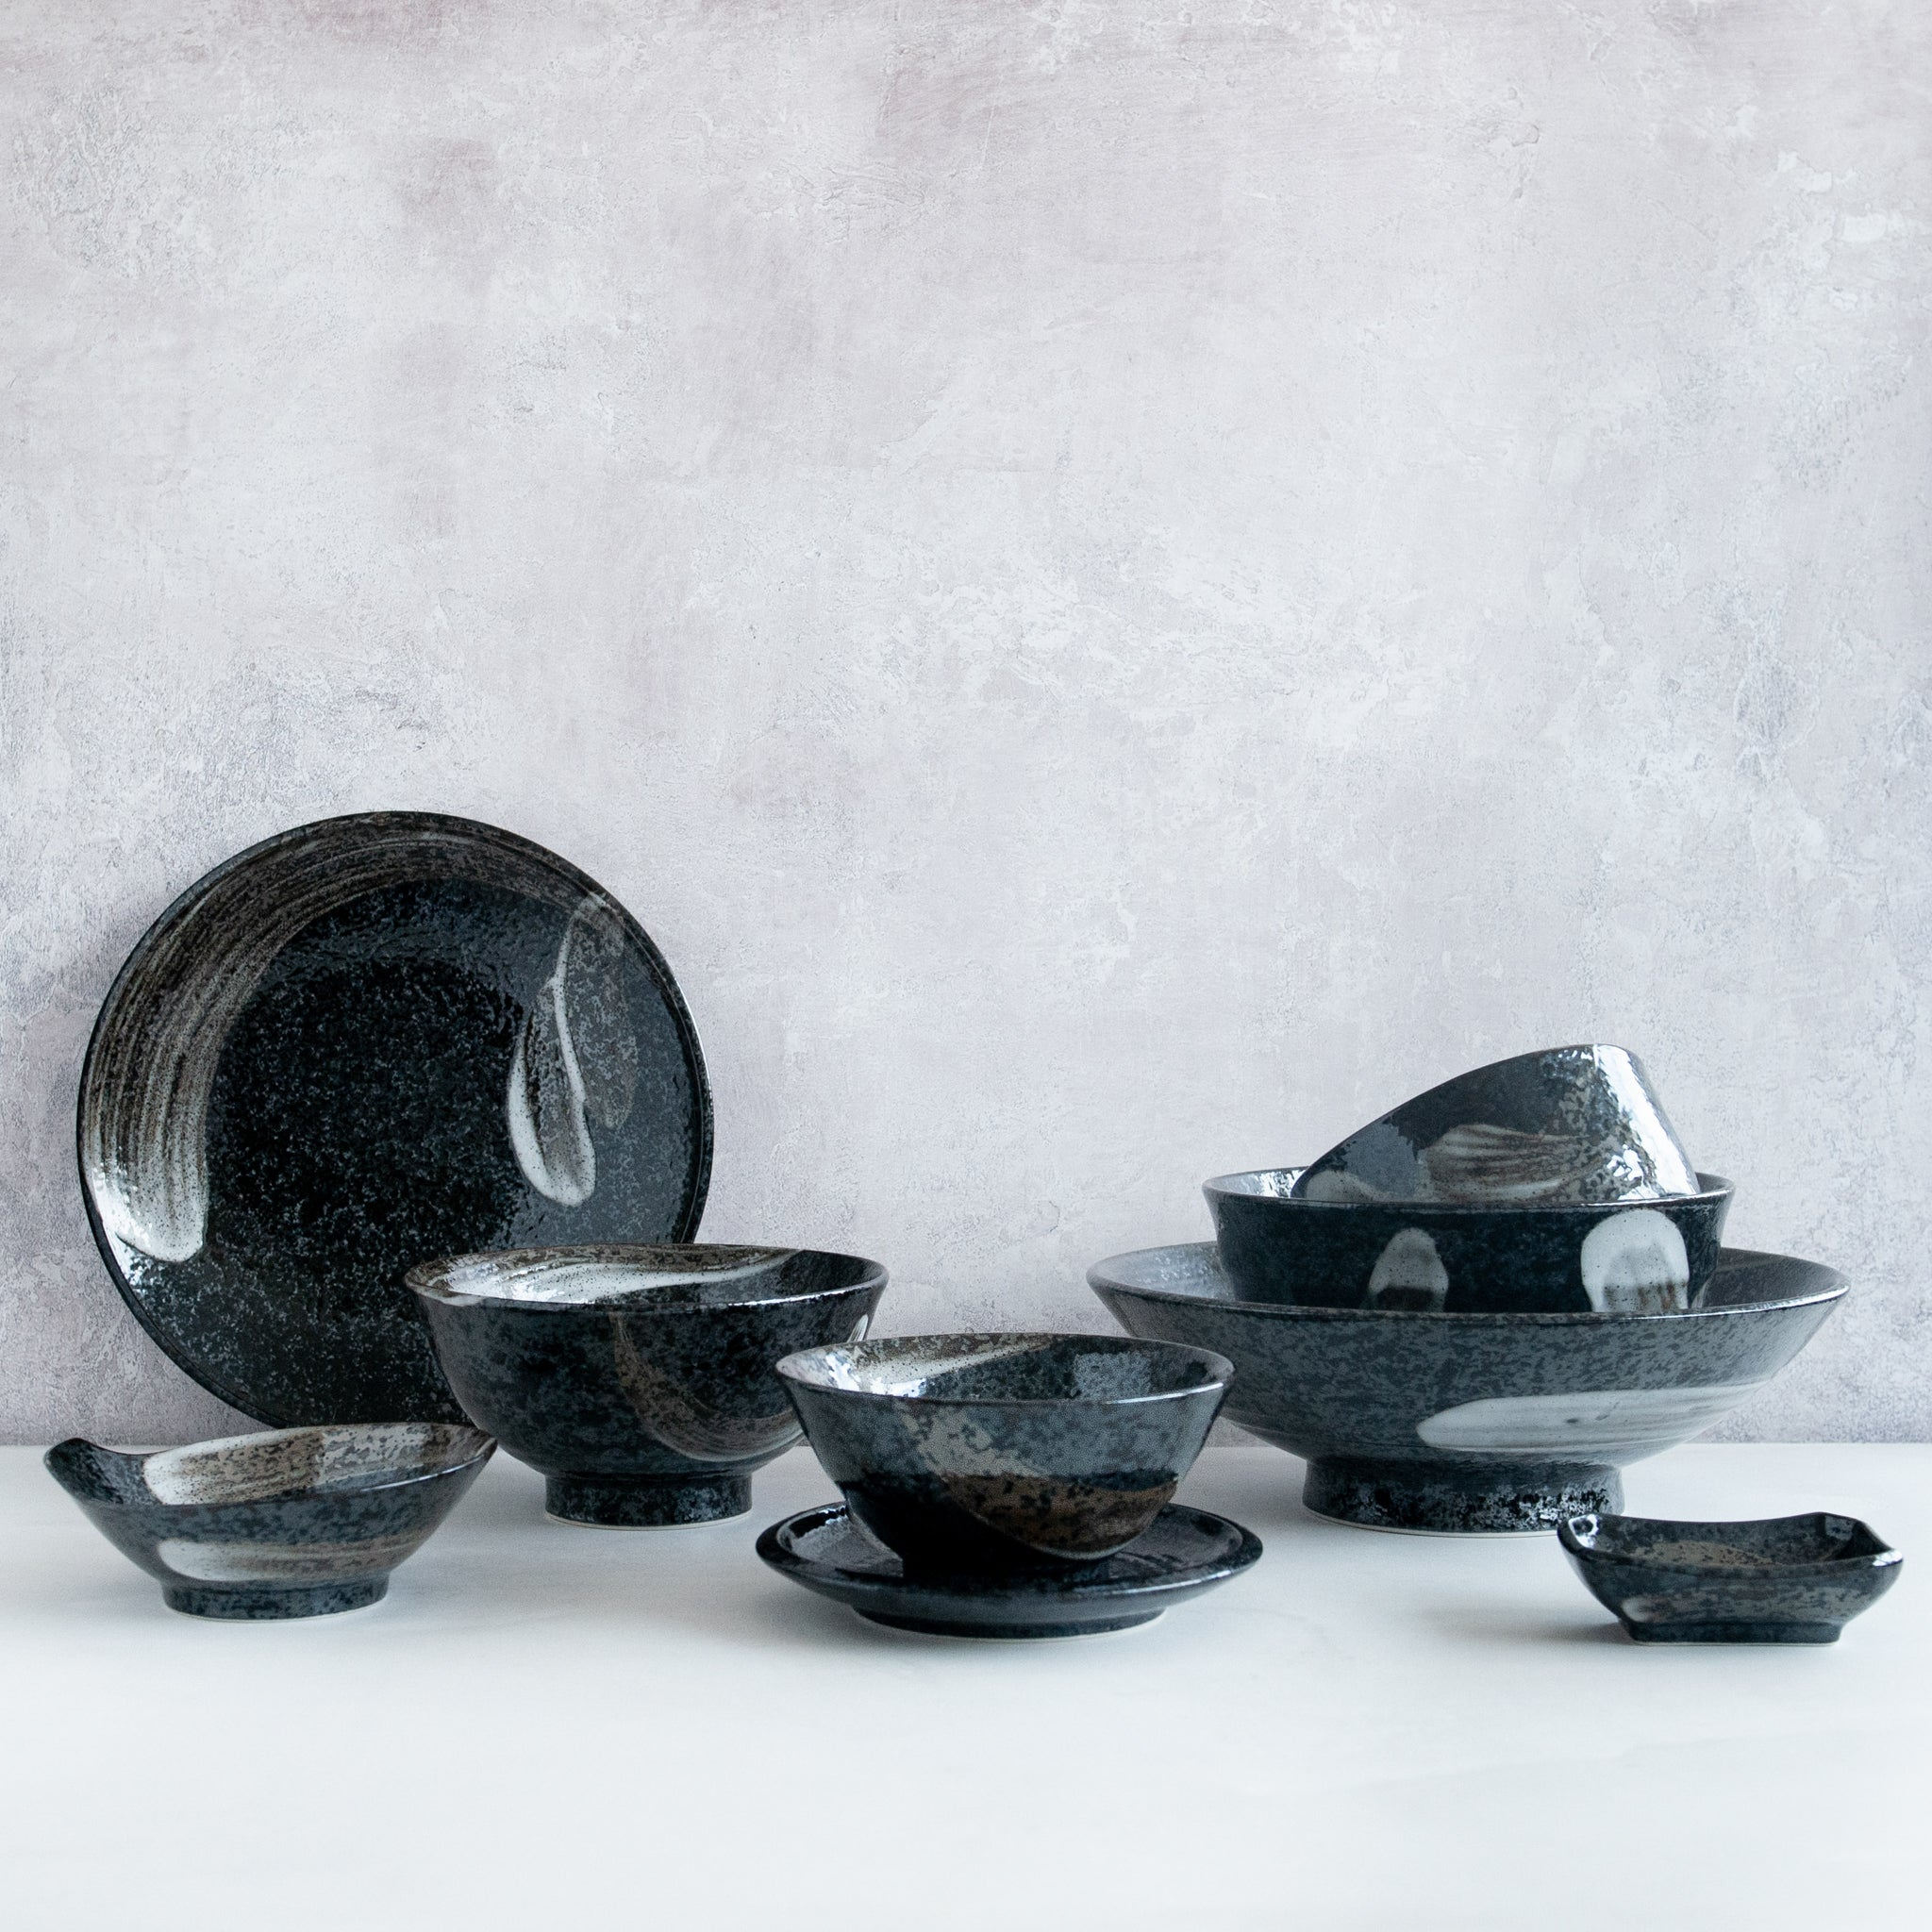 Kiji Stoneware & Ceramics Karasuba-Iro Noodle Bowl Tableware Japanese Tableware Japanese Food